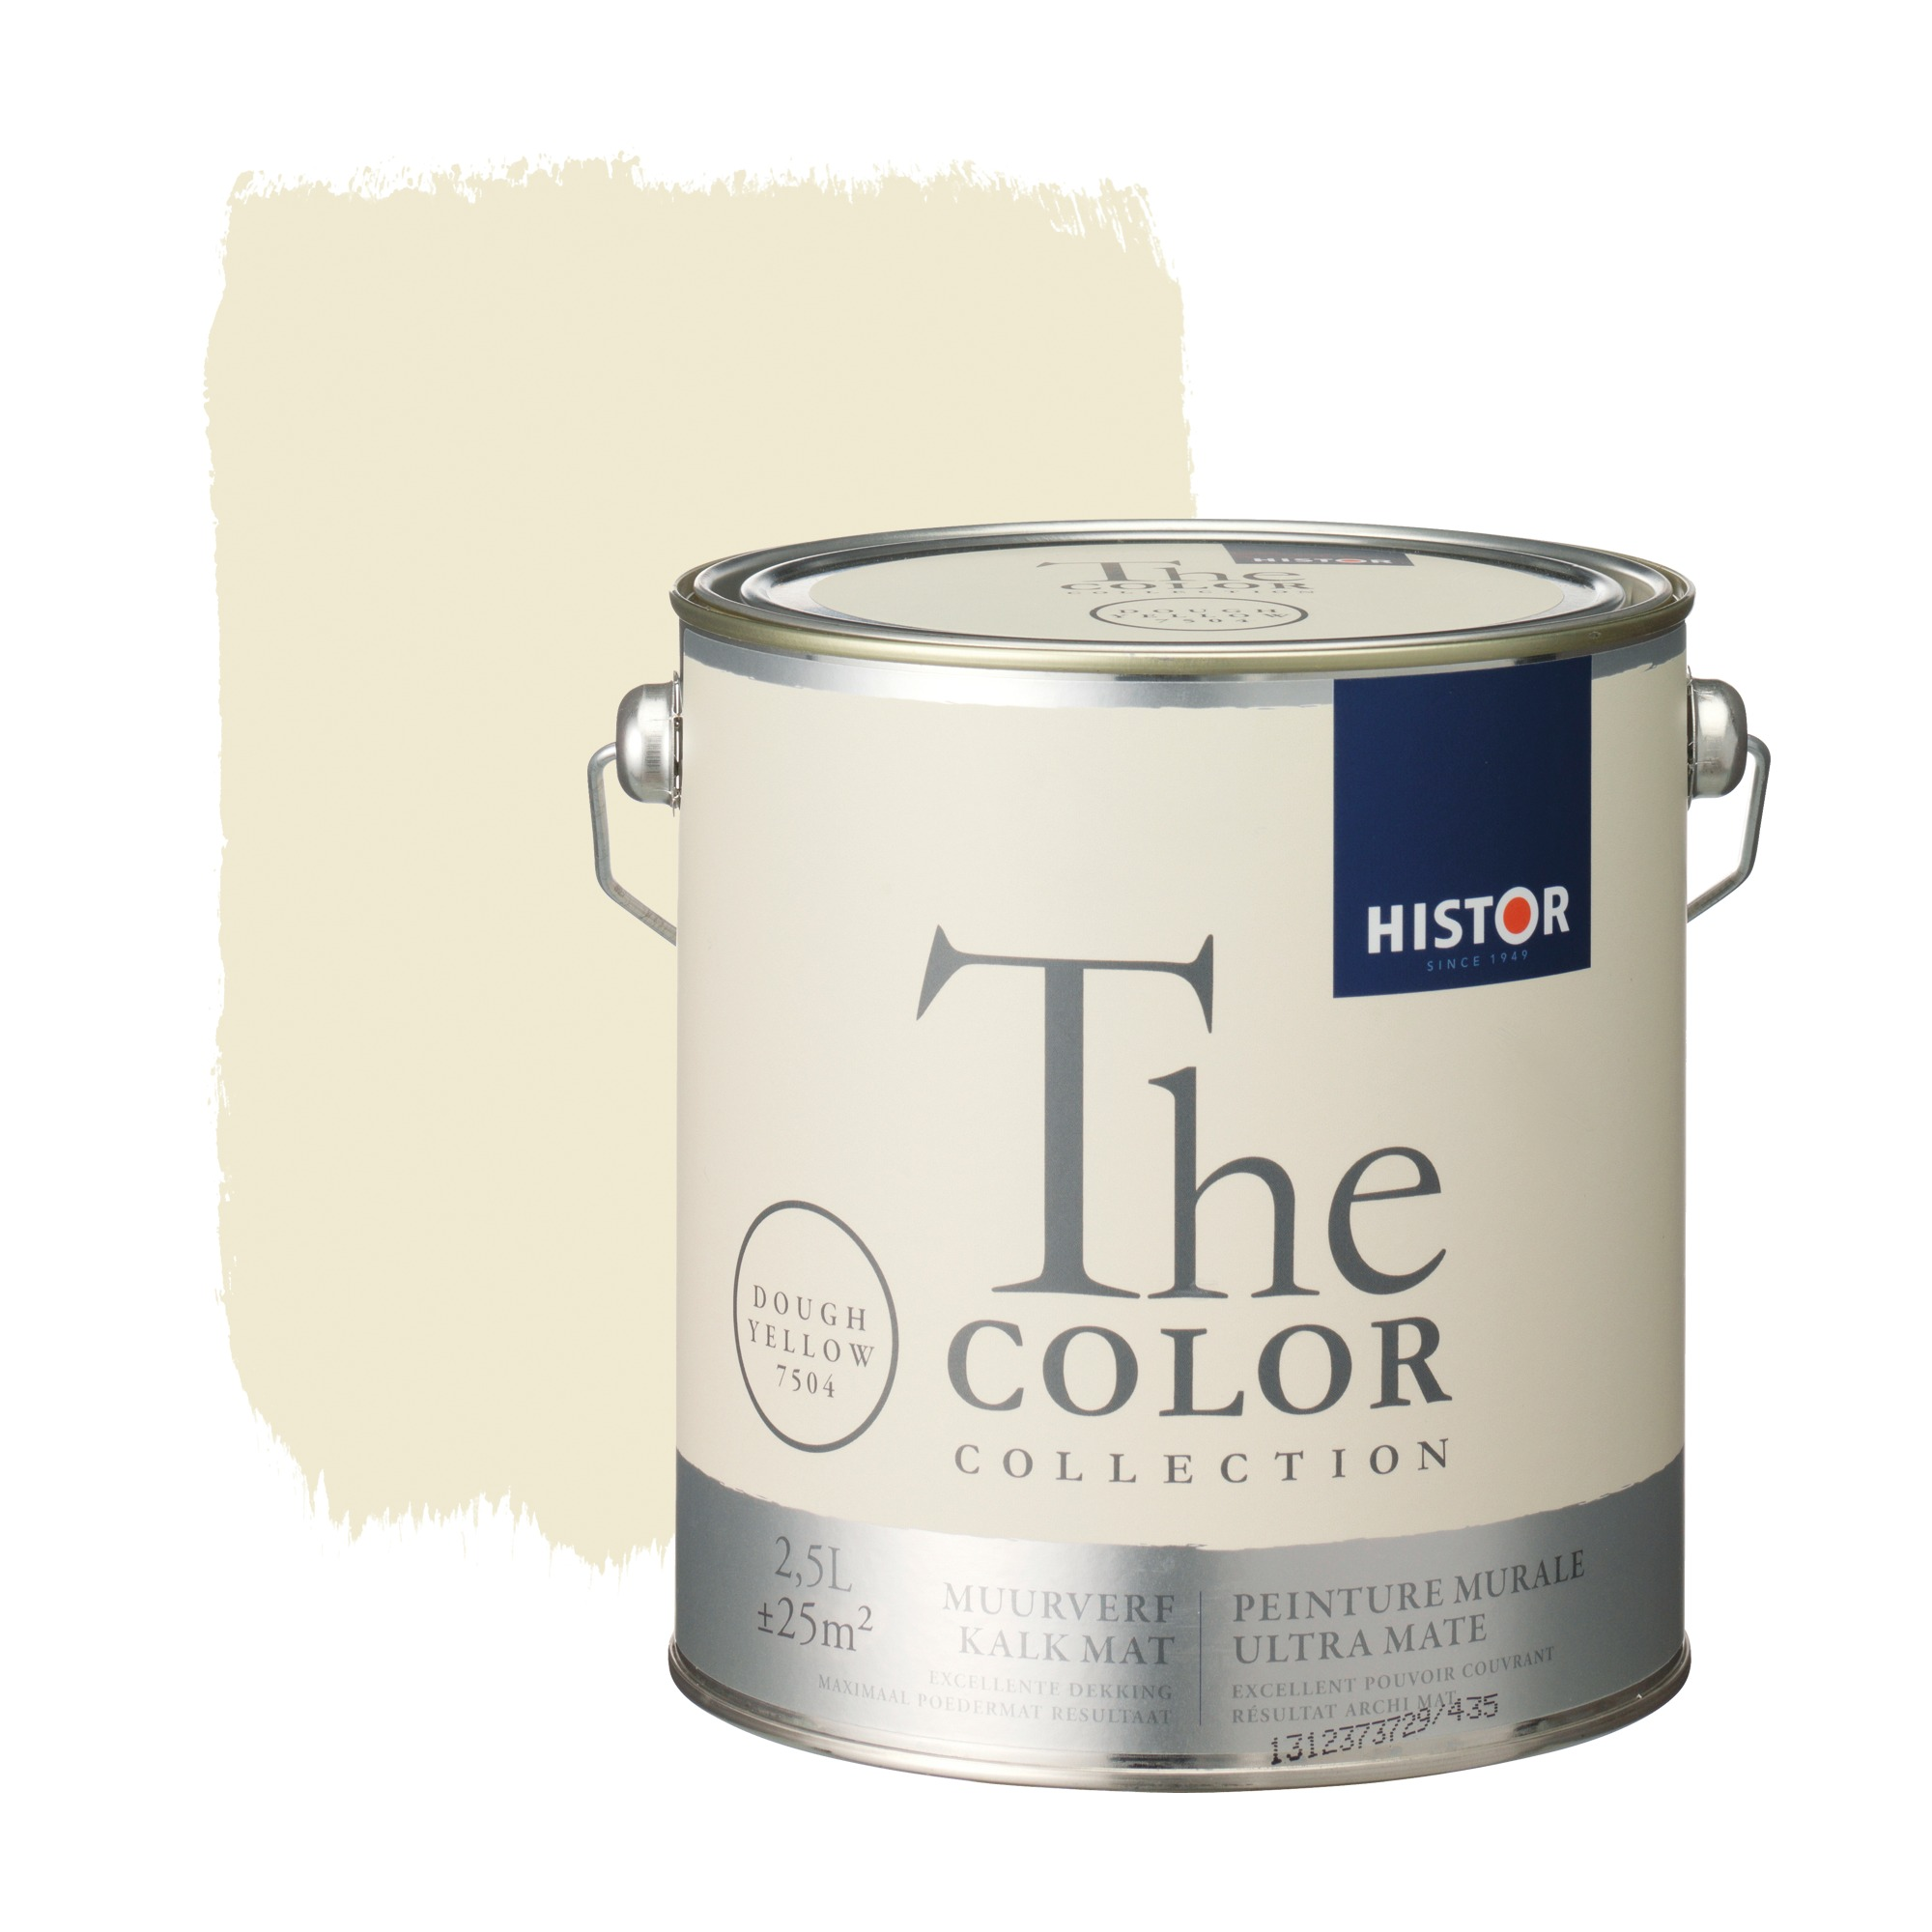 Histor the color collection muurverf kalkmat dough yellow 7504 2,5 l